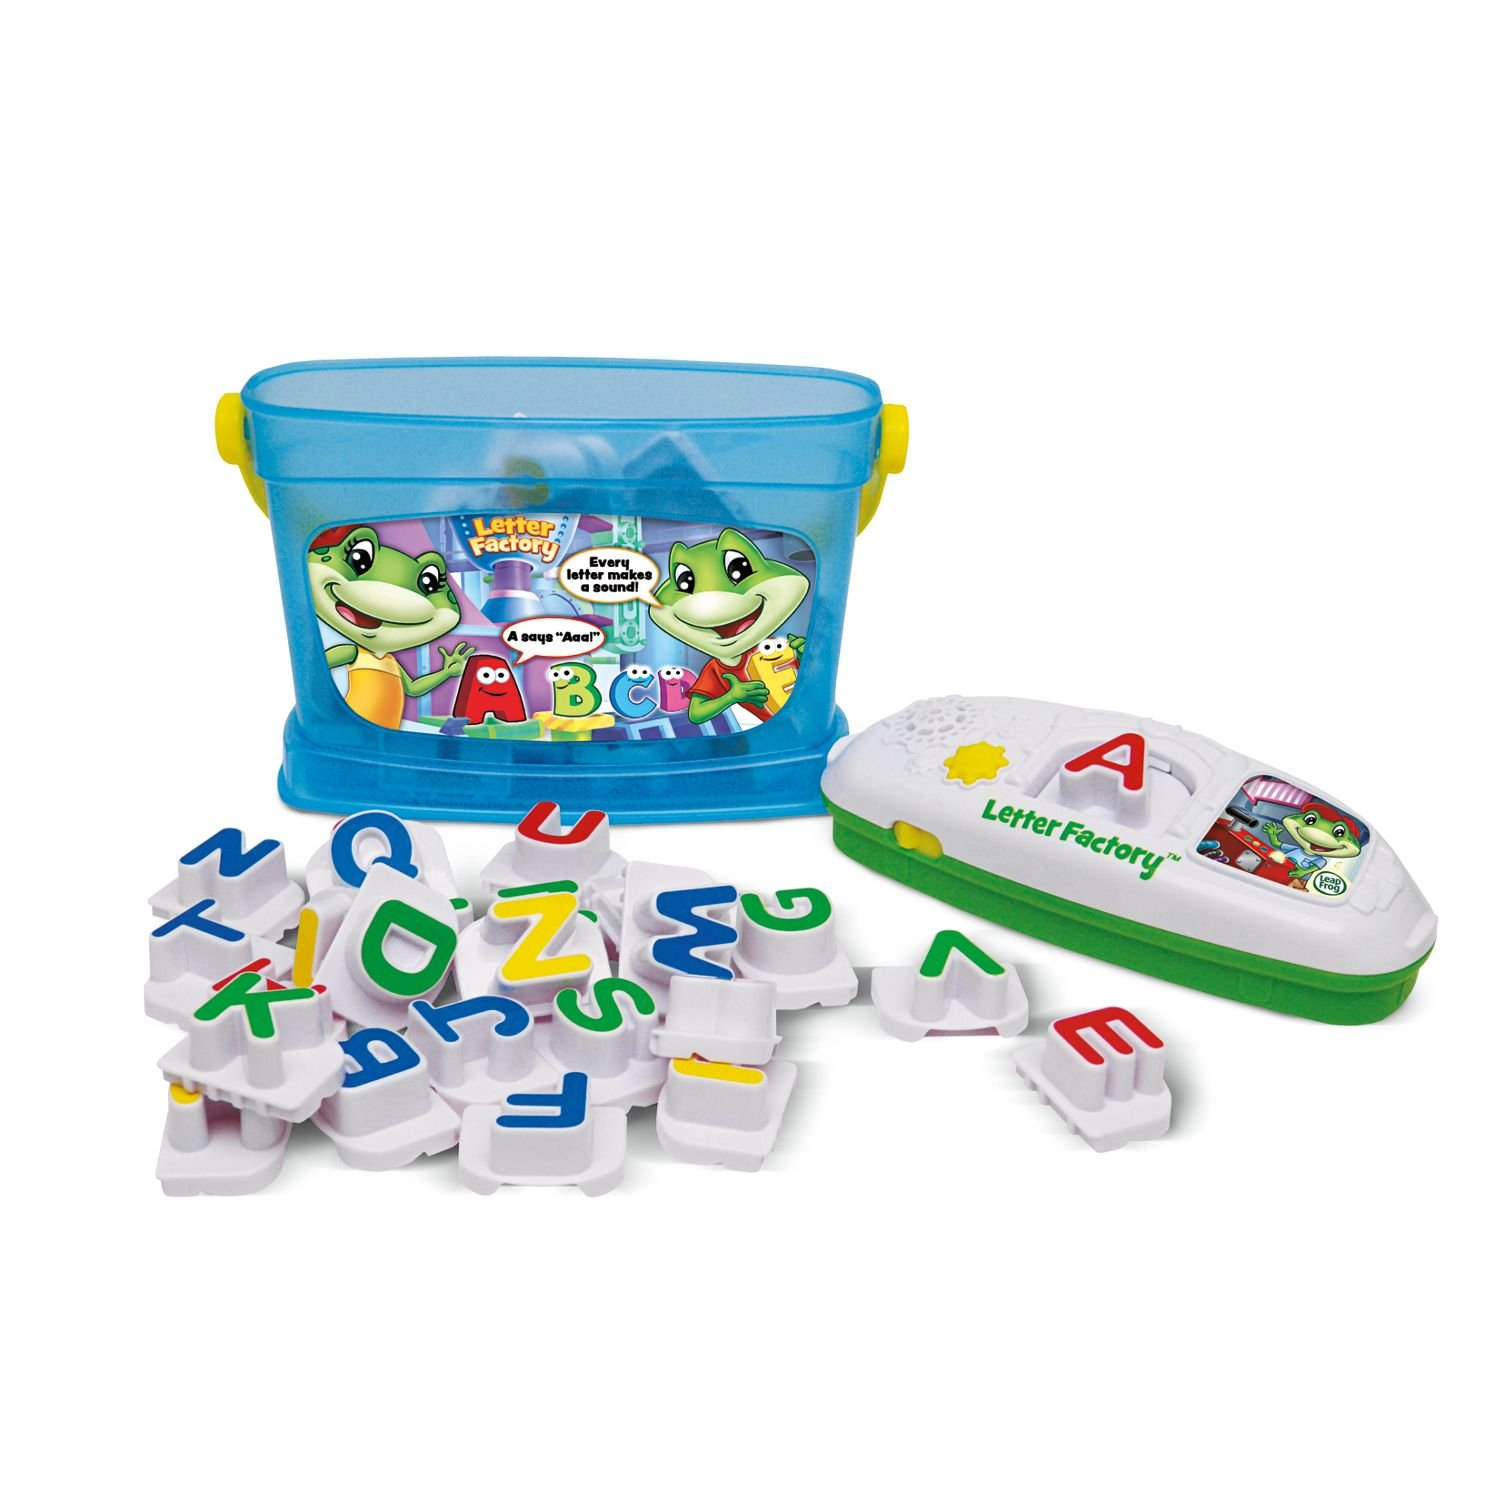 of the leapfrog letter factory phonics includes the 26 letters ...